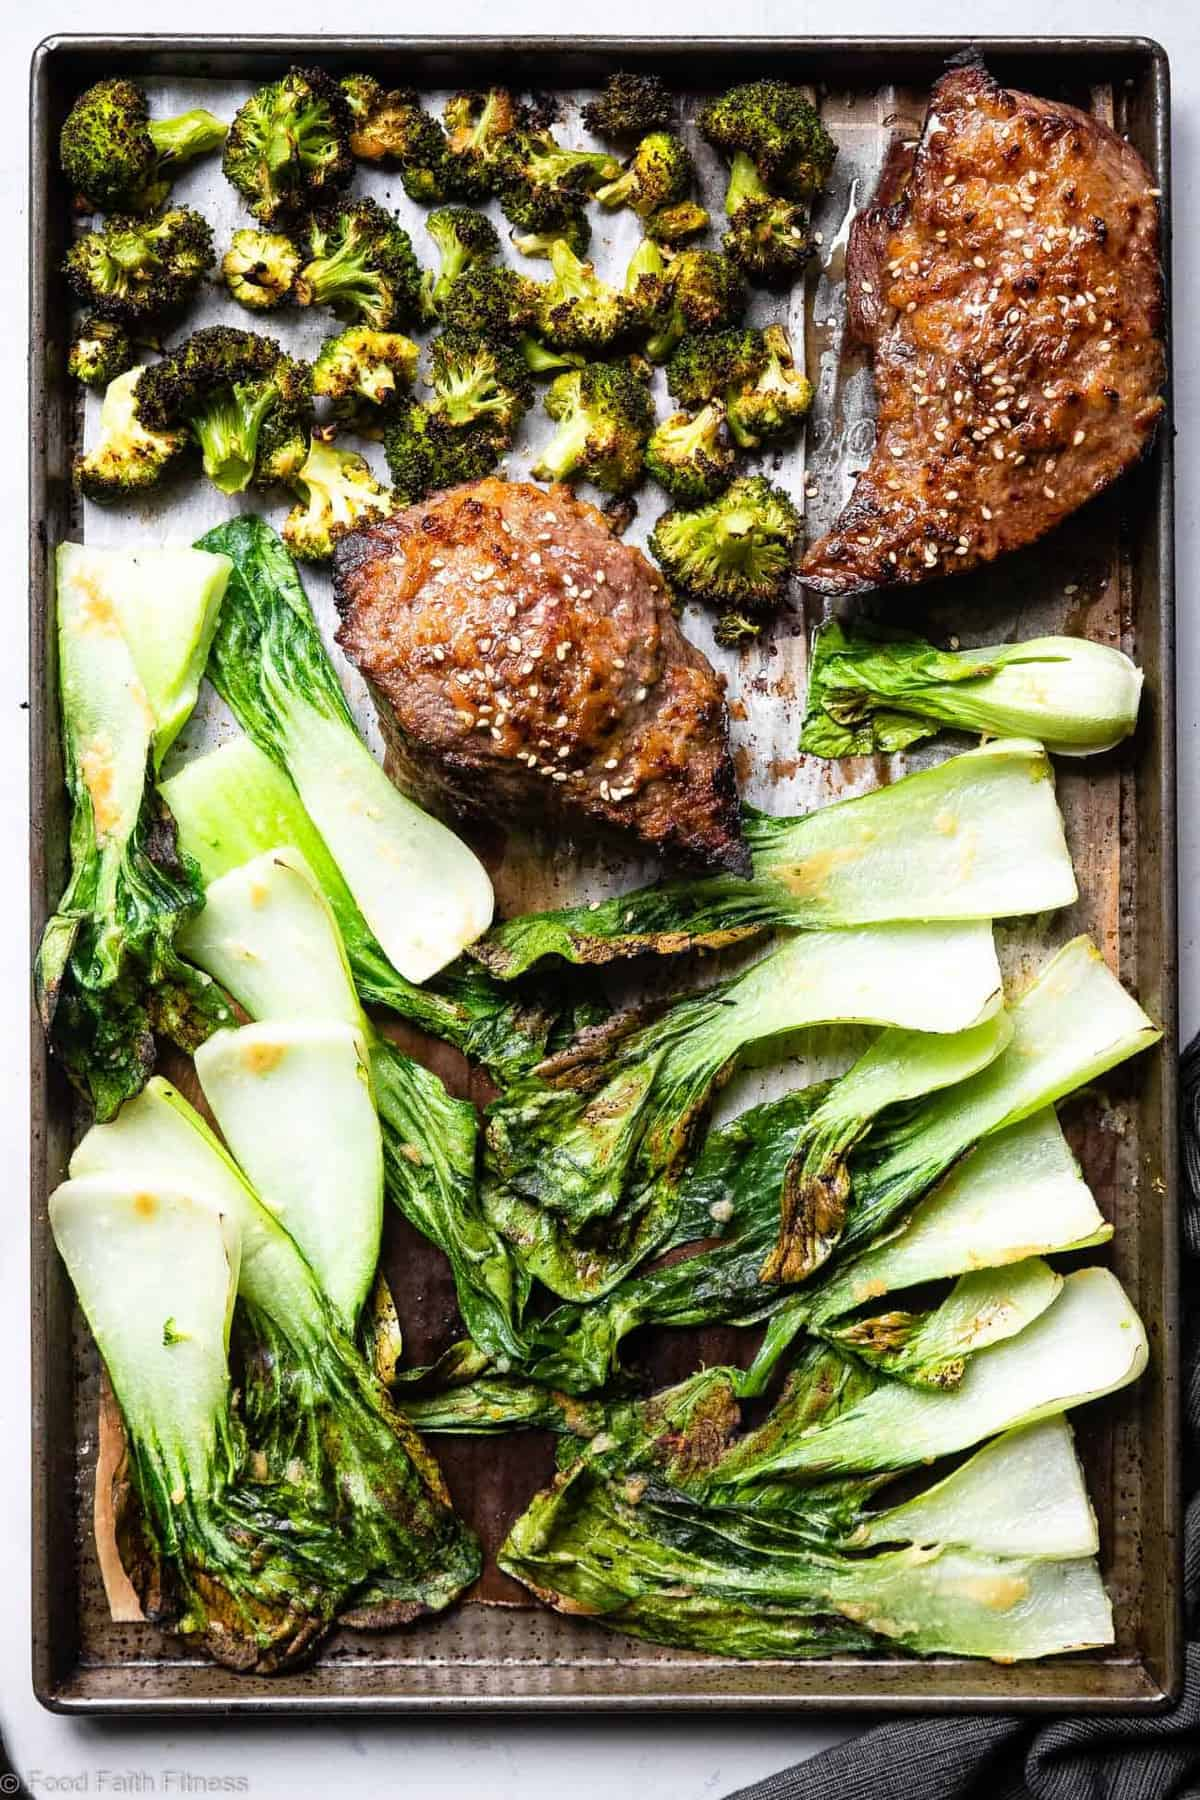 Asian Miso Steak Sheet Pan Dinner - This Sheet Pan Dinner is an EASY weeknight meal with bold, Asian flavor! This is a healthy, low carb and keto dinner that you will make over and over! Guaranteed to please a crowd! | #Foodfaithfitness | #Glutenfree #Keto #Lowcarb #Healthy #Asian